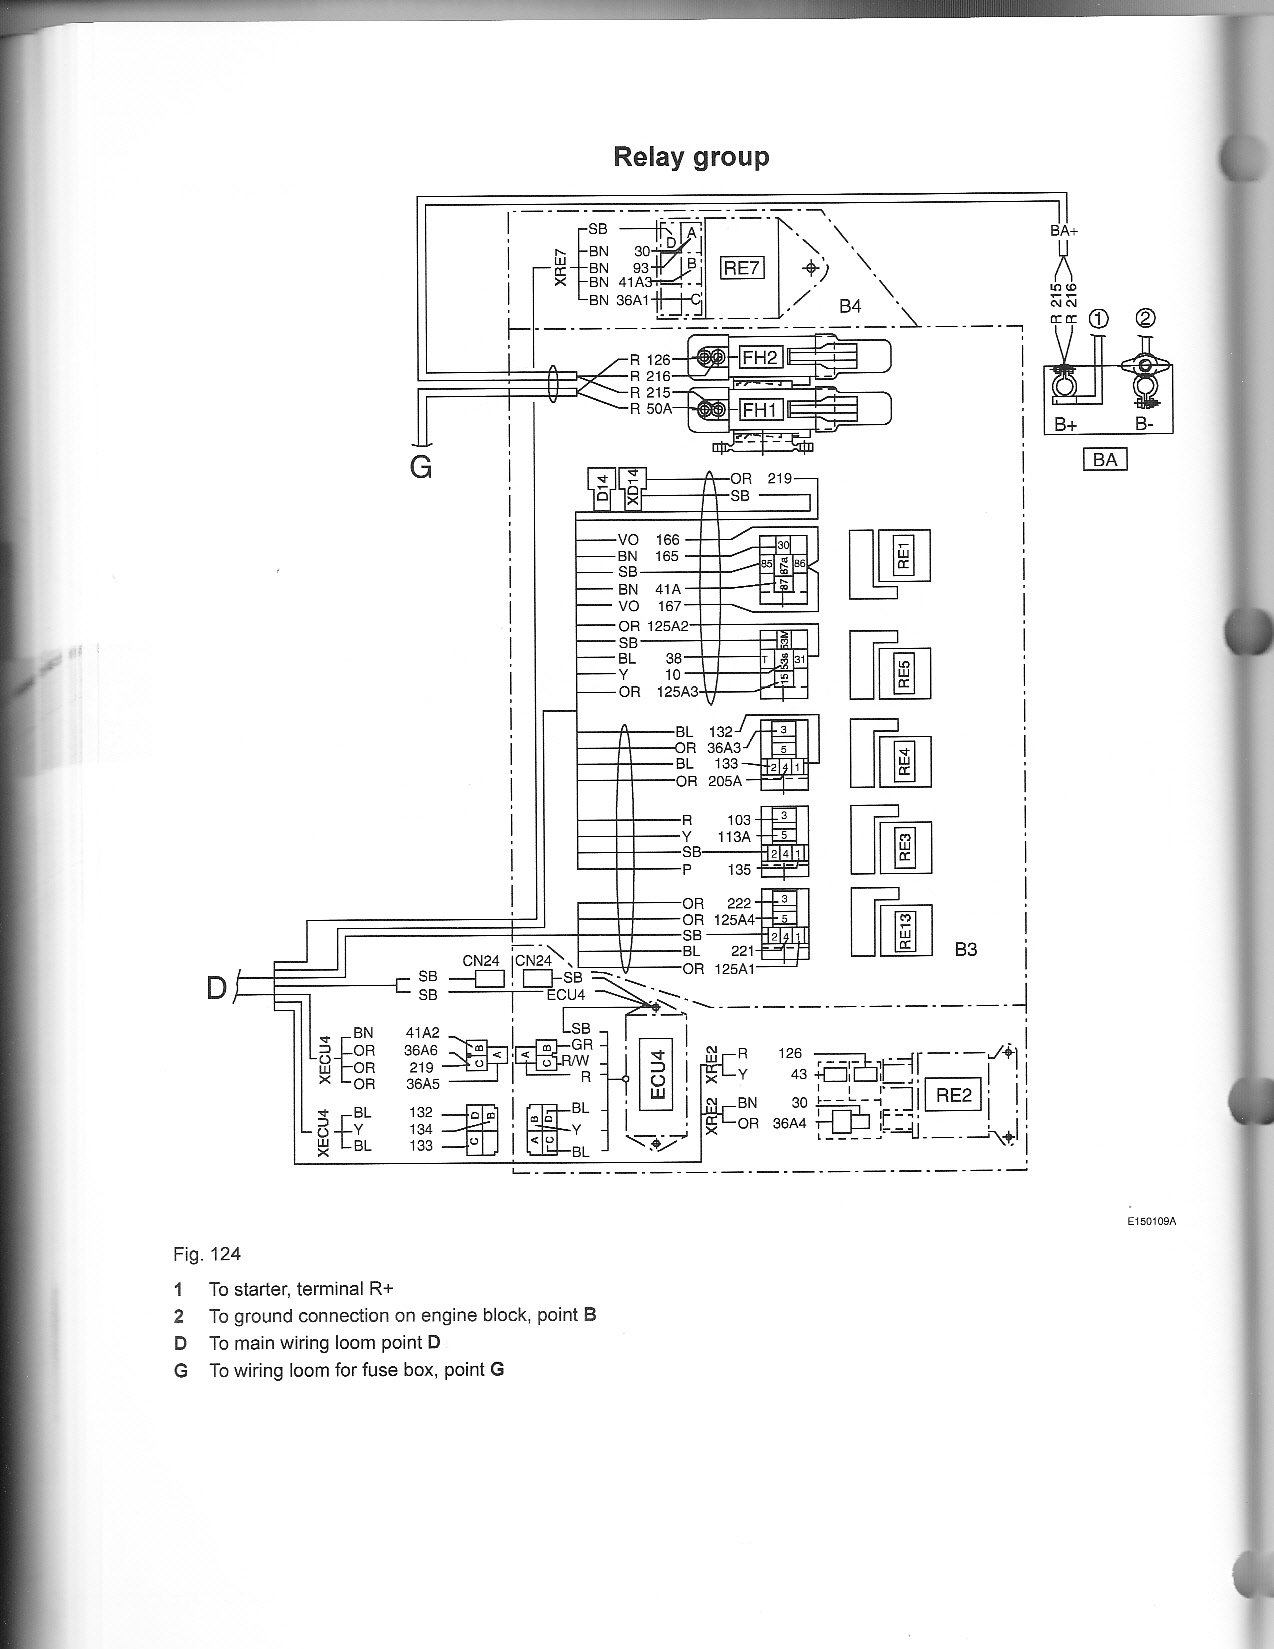 Takeuchi Tb 135 Wiring Diagram